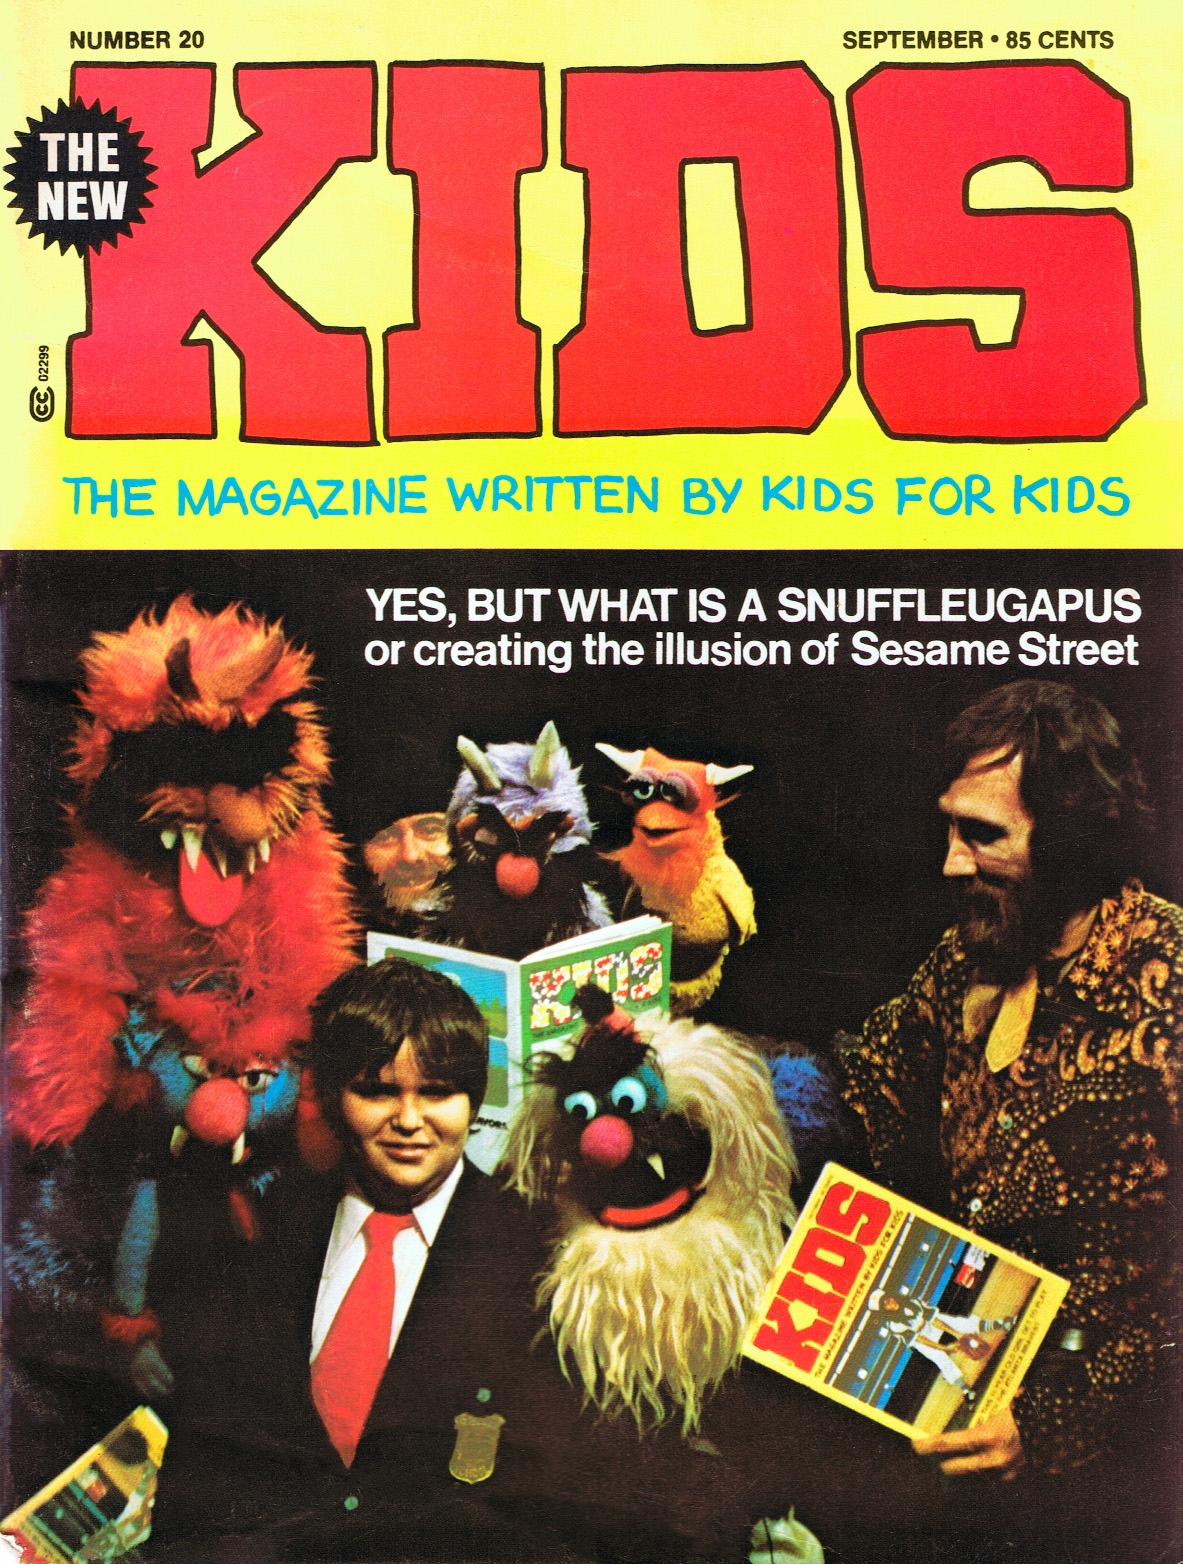 Kidsmag